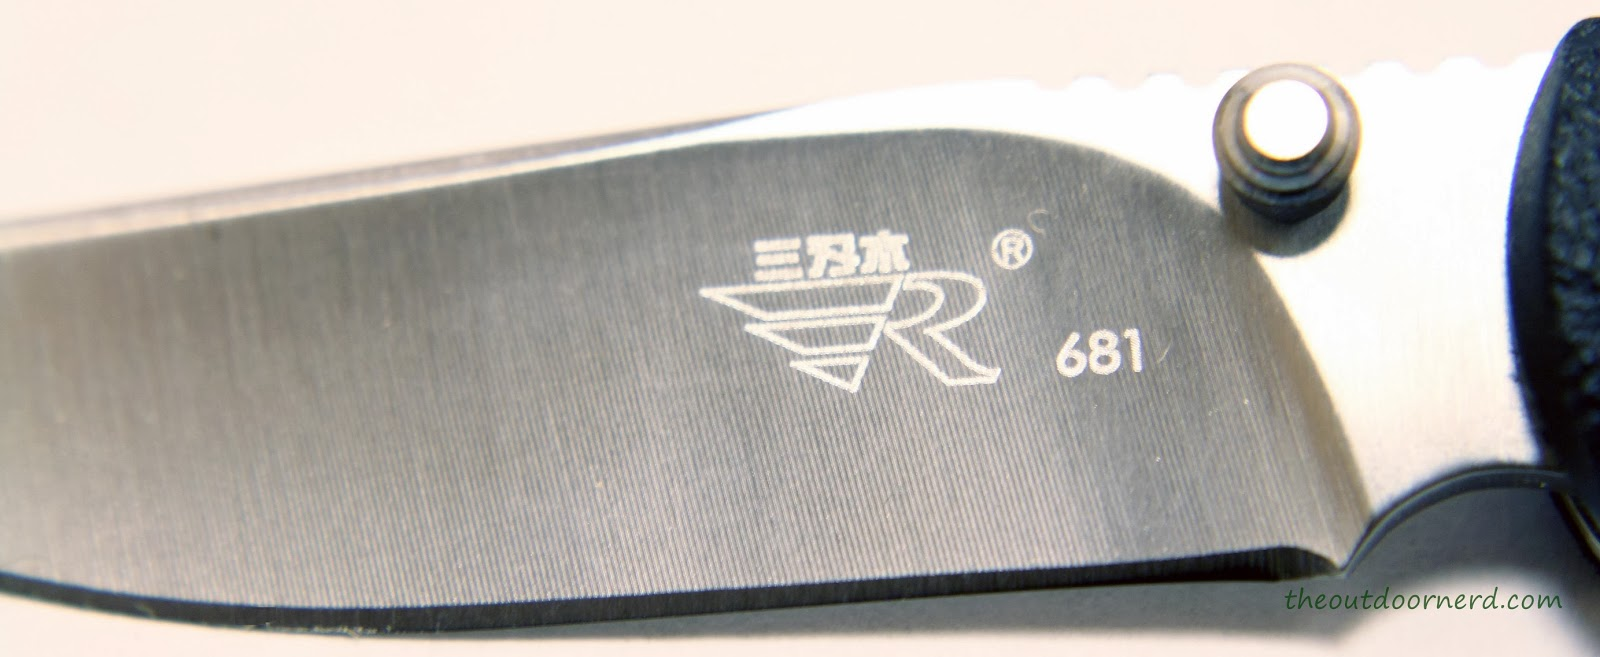 SanRenMu ZB-681 Pocket Knife - Closeup Of Blade 3